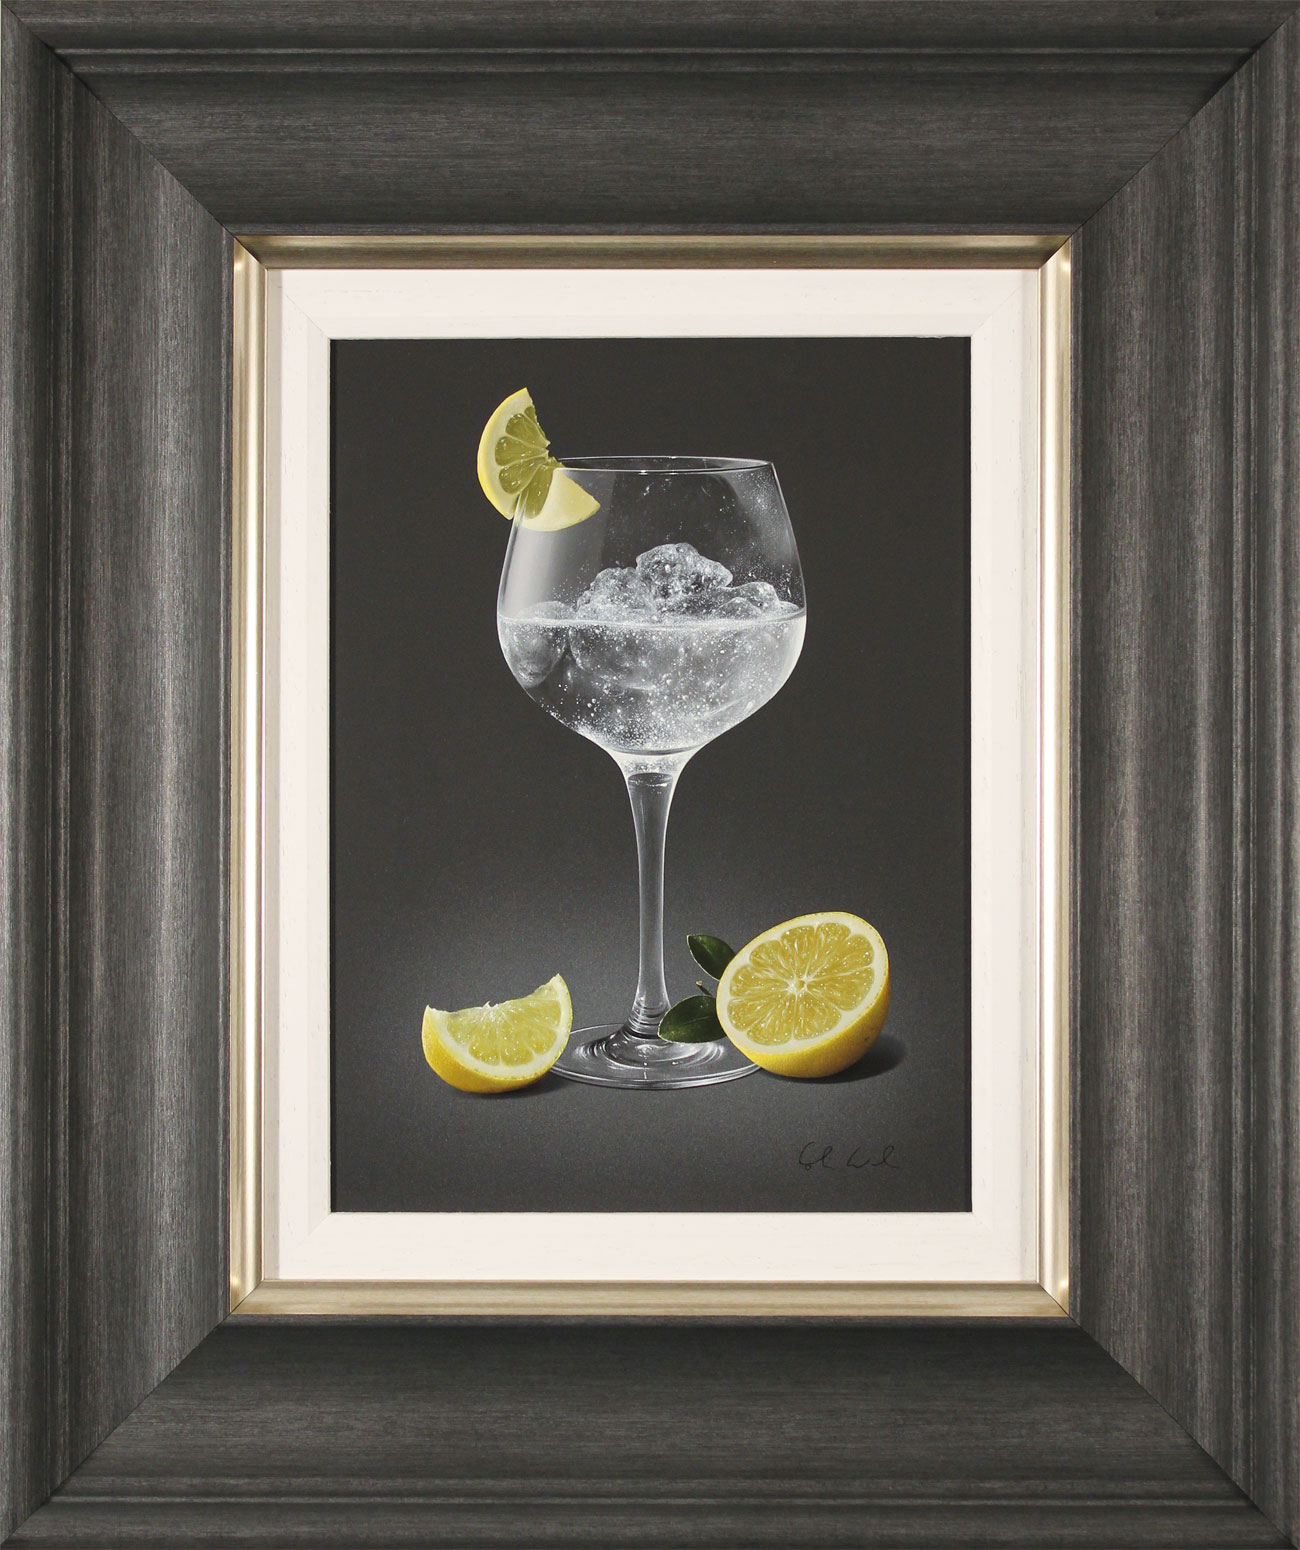 Colin Wilson, Original acrylic painting on board, Gin and Tonic with Lemon Click to enlarge